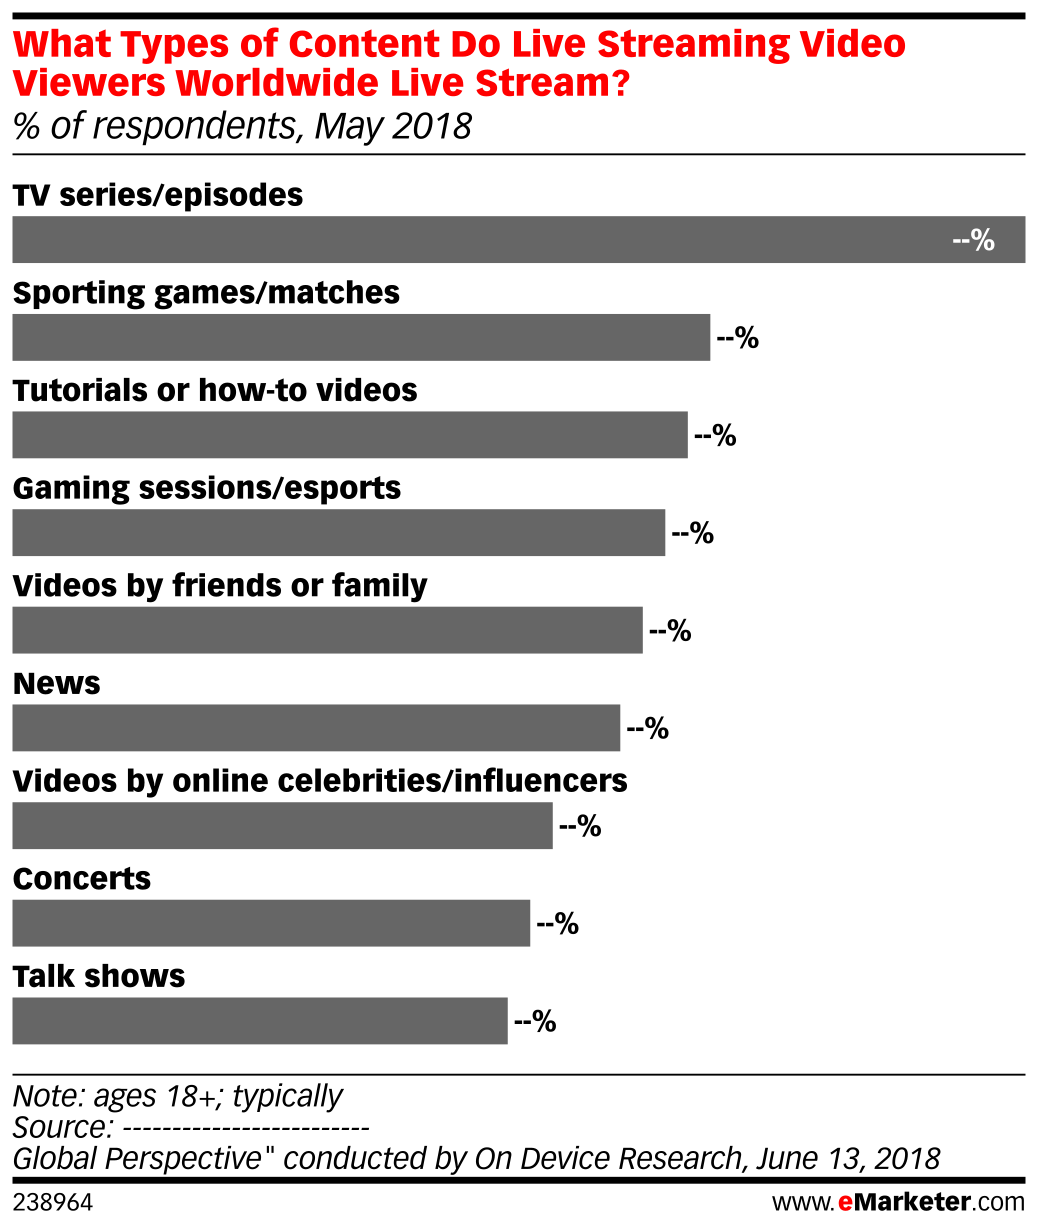 What Types of Content Do Live Streaming Video Viewers Worldwide Live Stream? (% of respondents, May 2018)